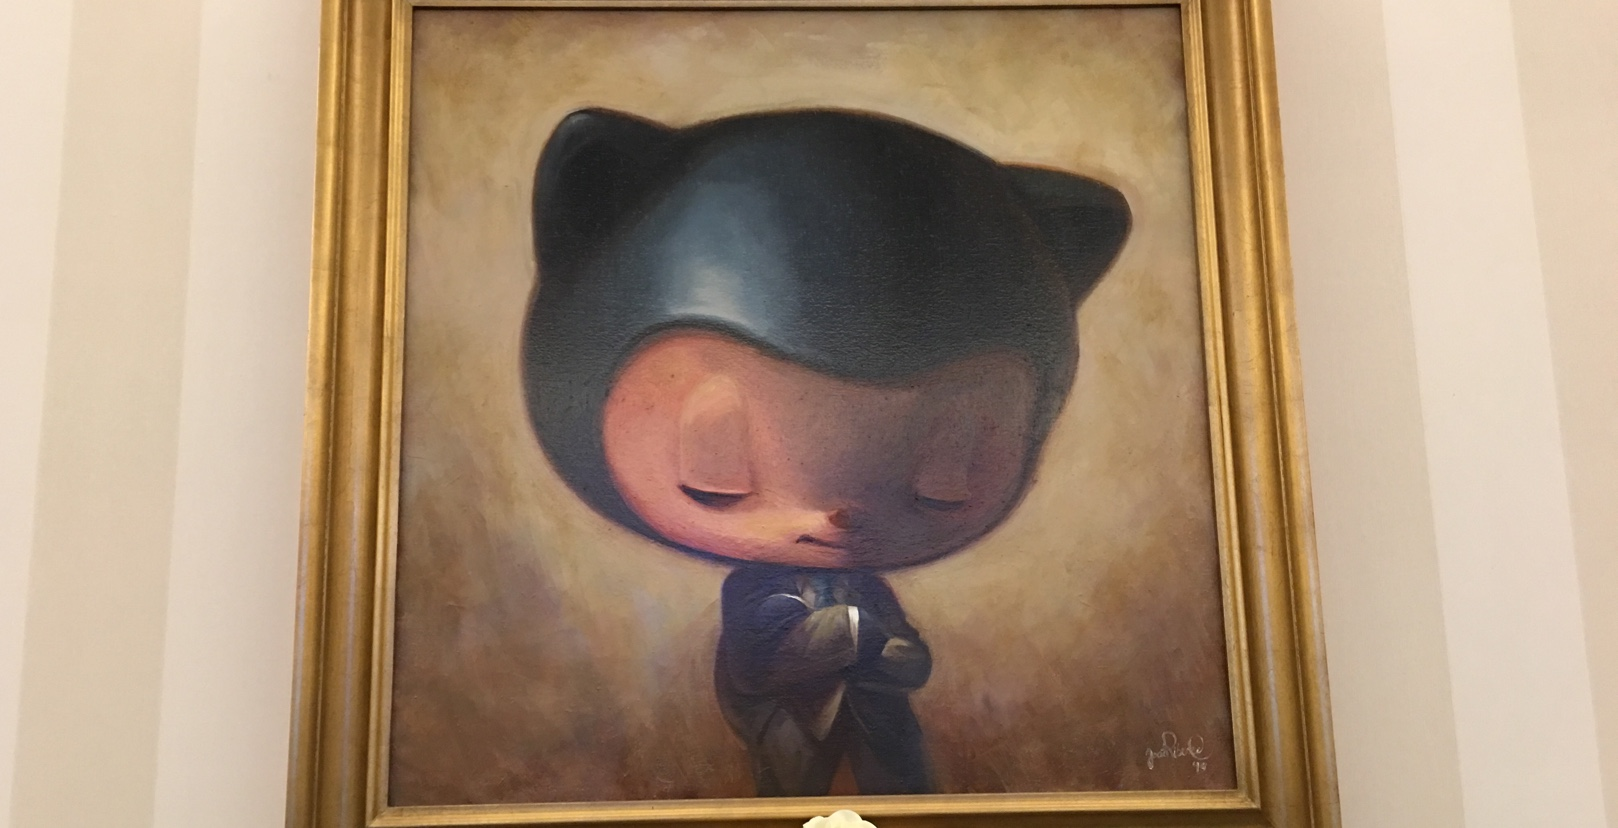 Reports indicate GitHub is having major issues regarding the company's future